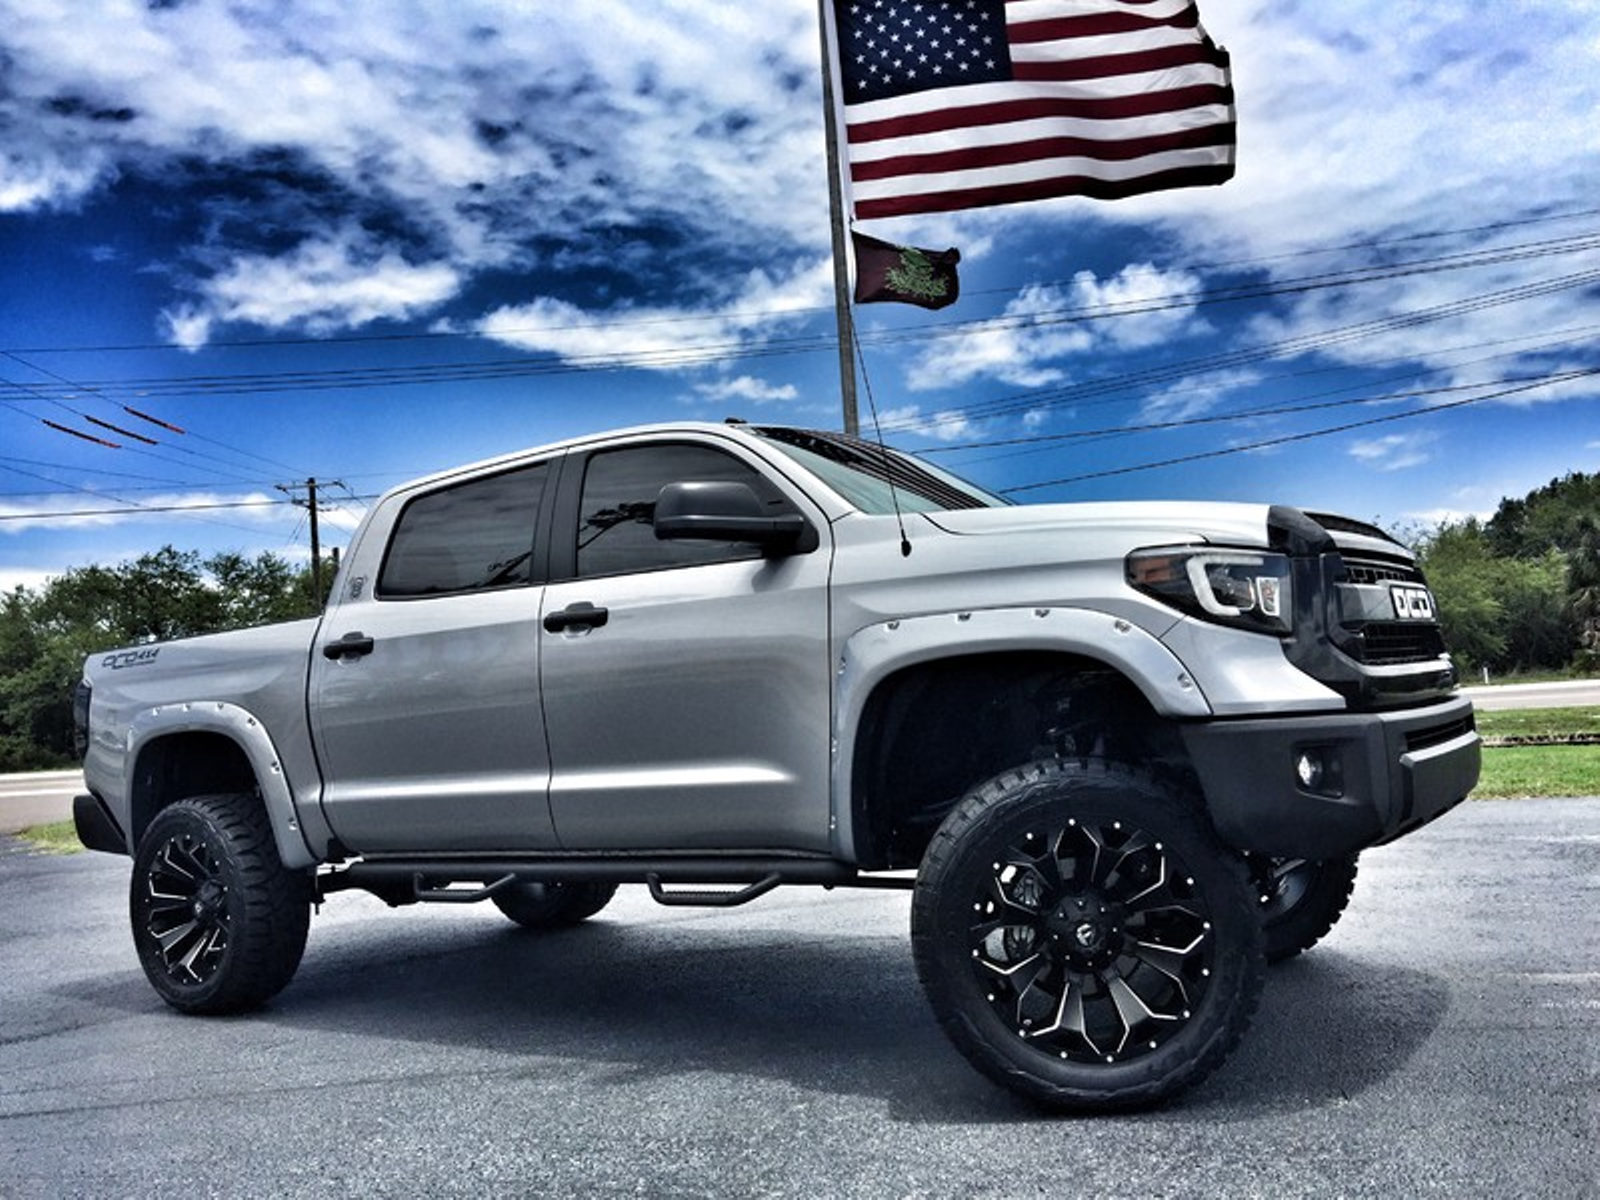 cool awesome 2017 toyota tundra custom lifted leather crewmax 4x4 v8 custom lifted crewmax 4x4. Black Bedroom Furniture Sets. Home Design Ideas